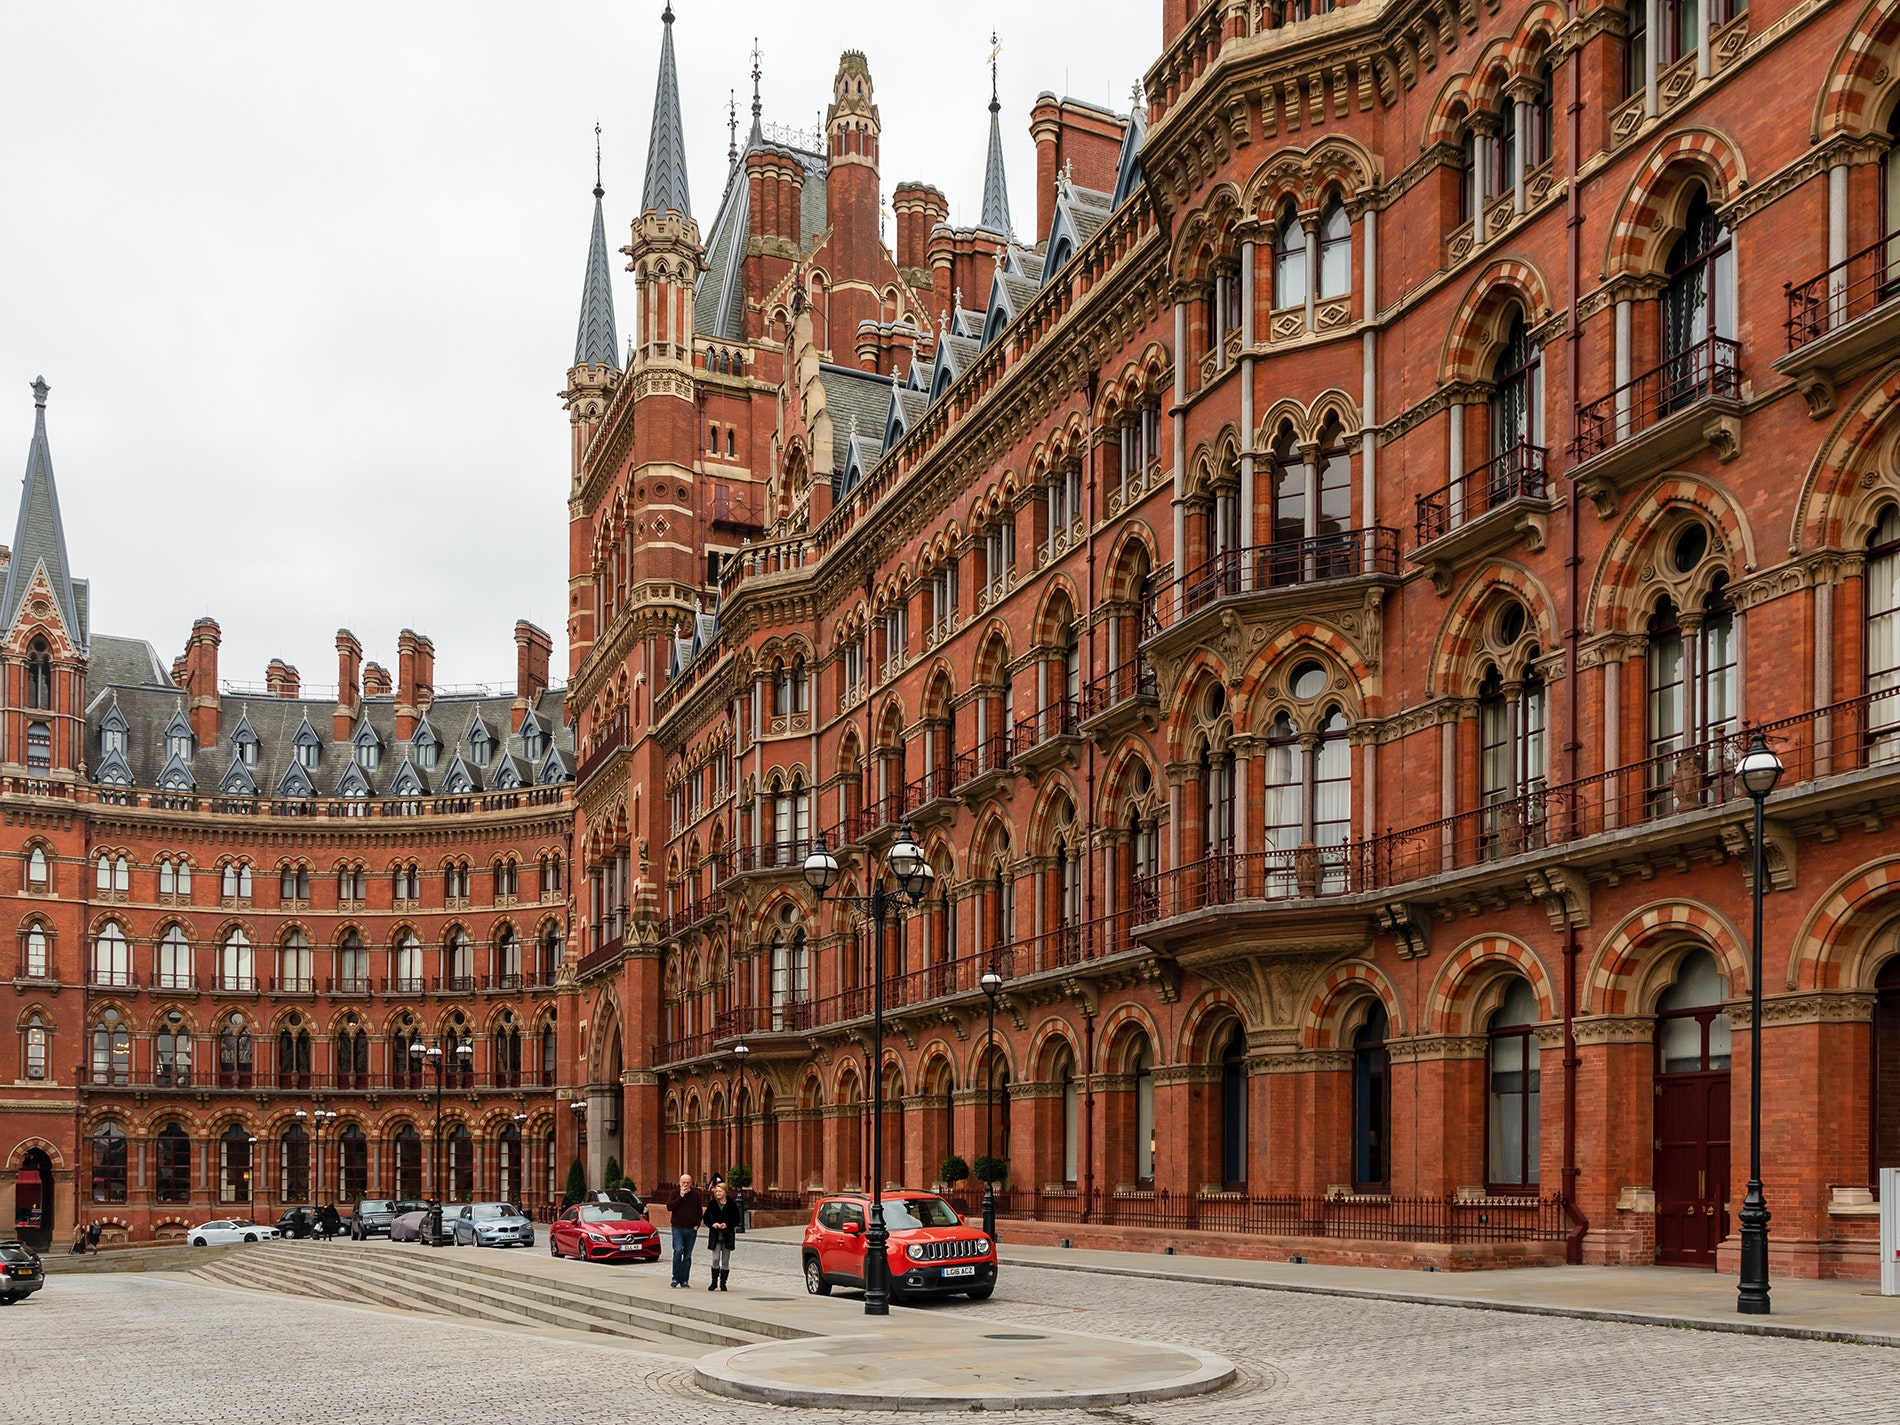 From the street, St. Pancras International is pure old-fashioned elegance, but inside, it's exciting and modern.